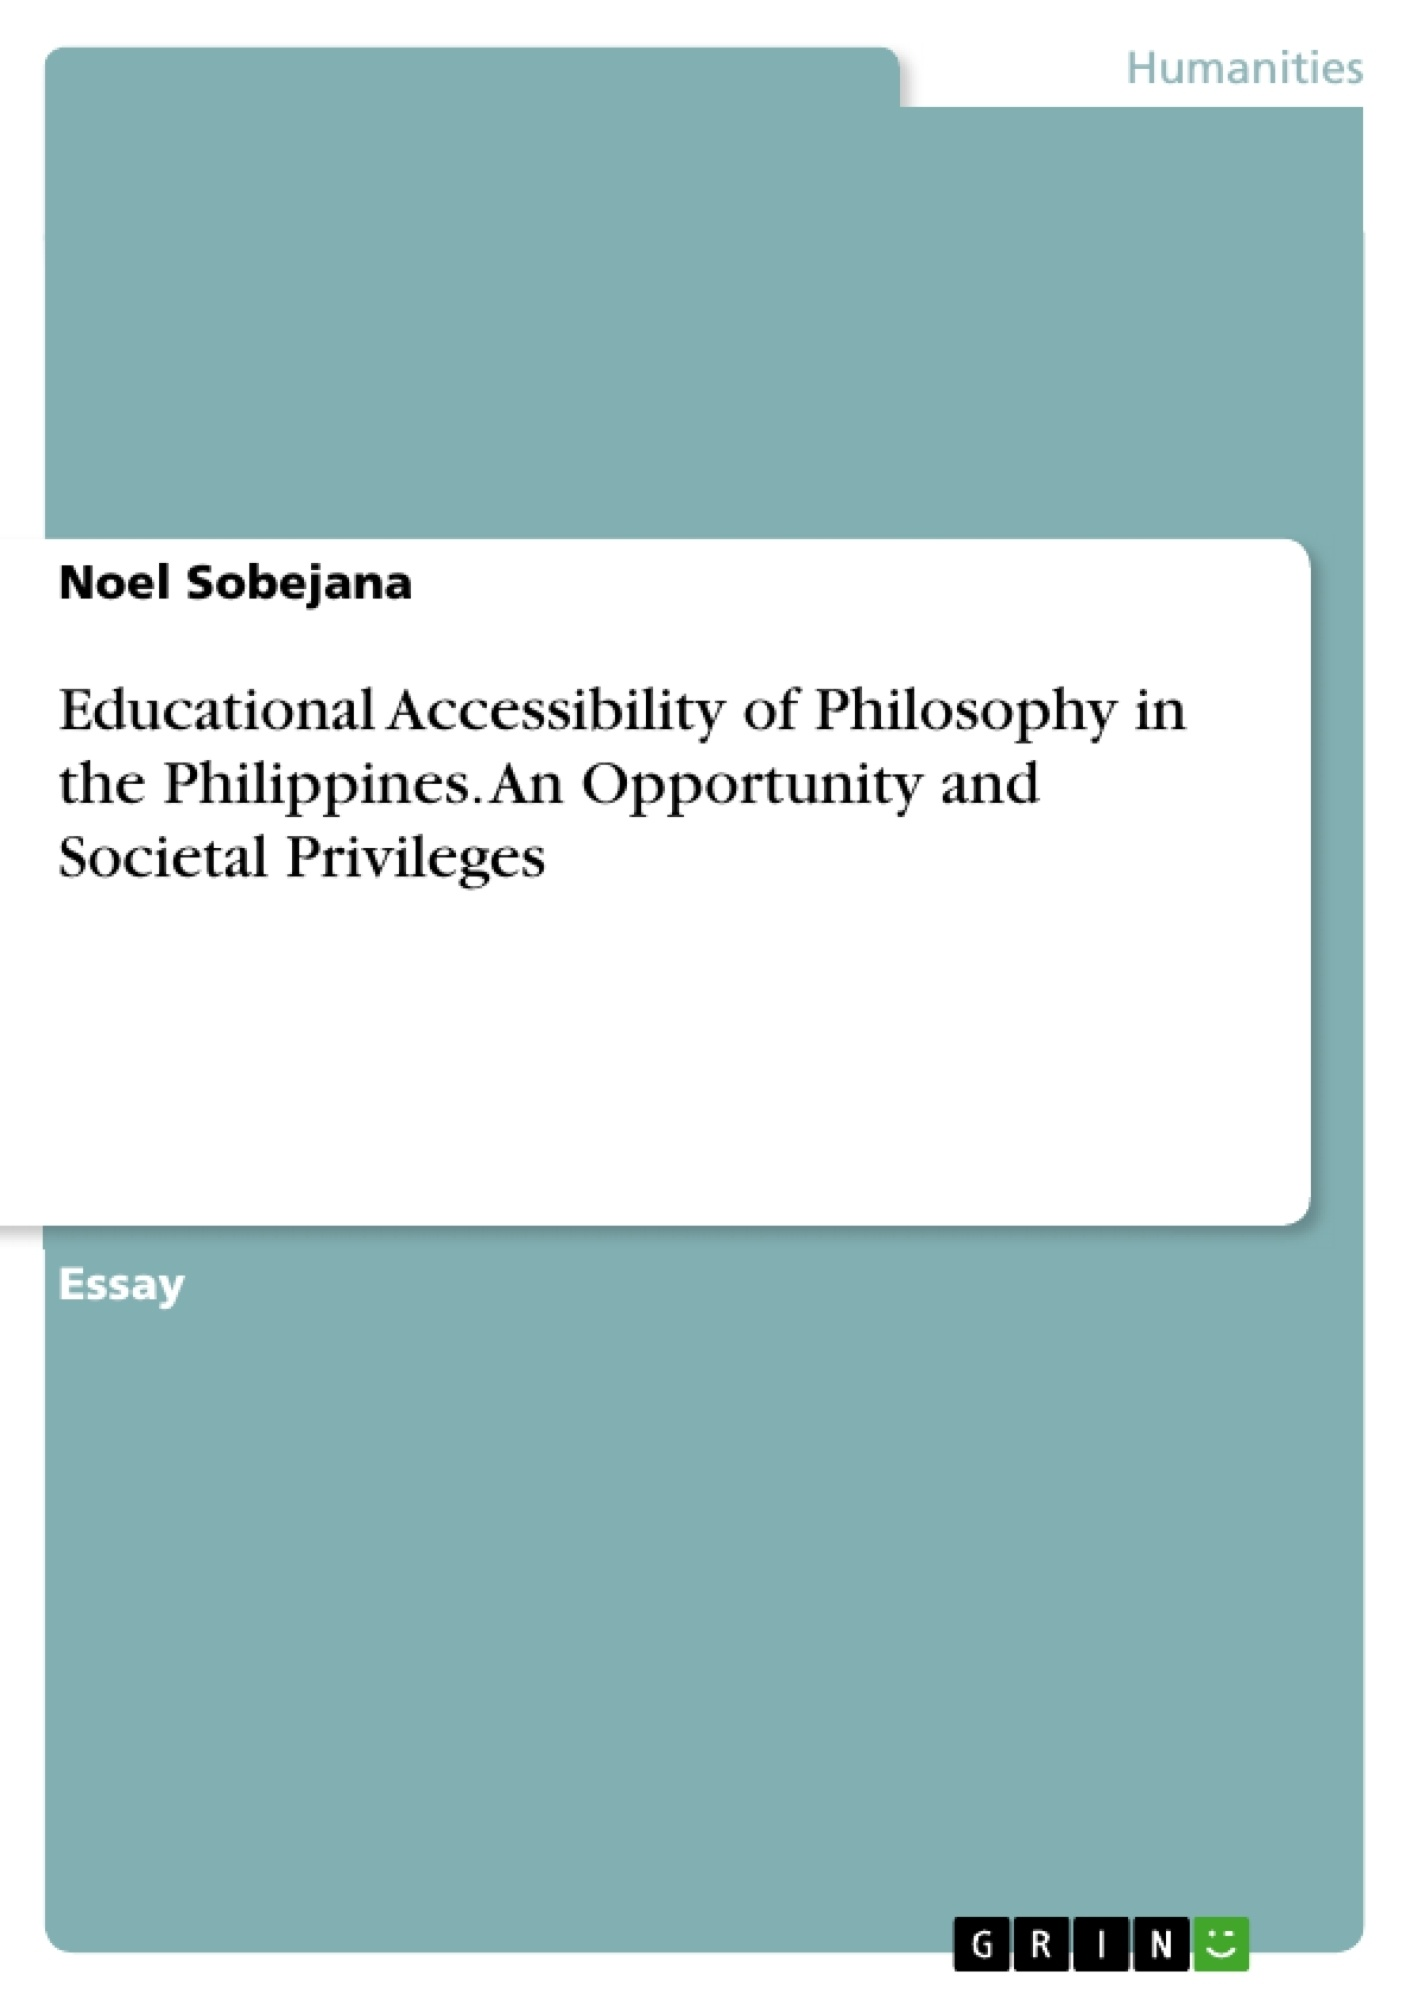 Title: Educational Accessibility of Philosophy in the Philippines. An Opportunity and Societal Privileges